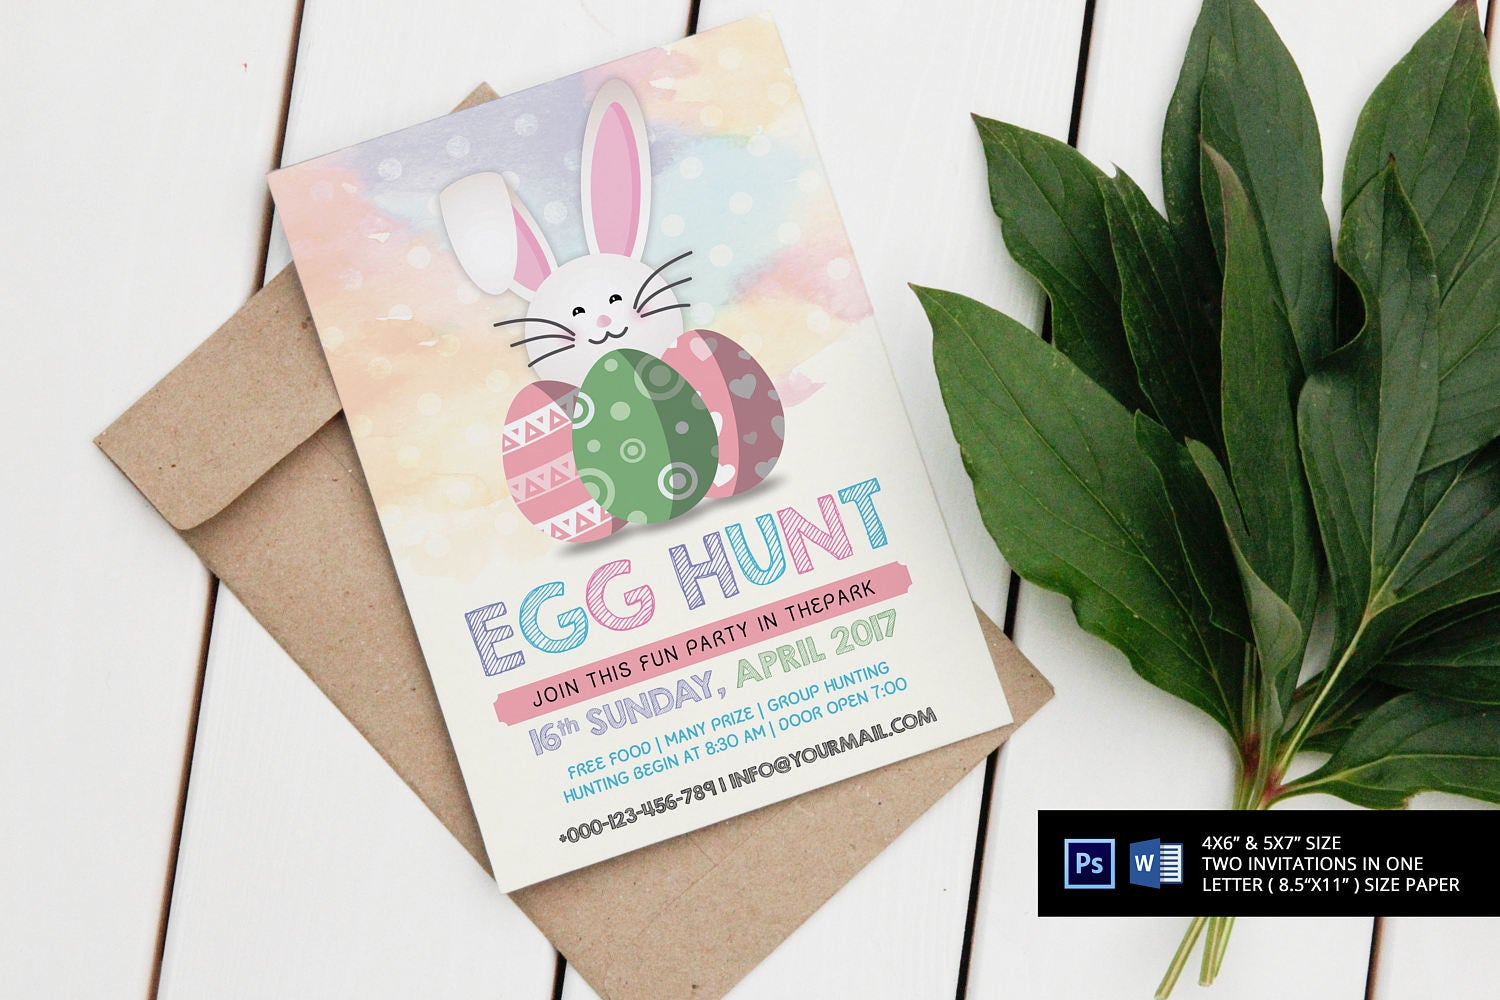 Aquarell Ostern Party Einladung Vorlage Instant Download